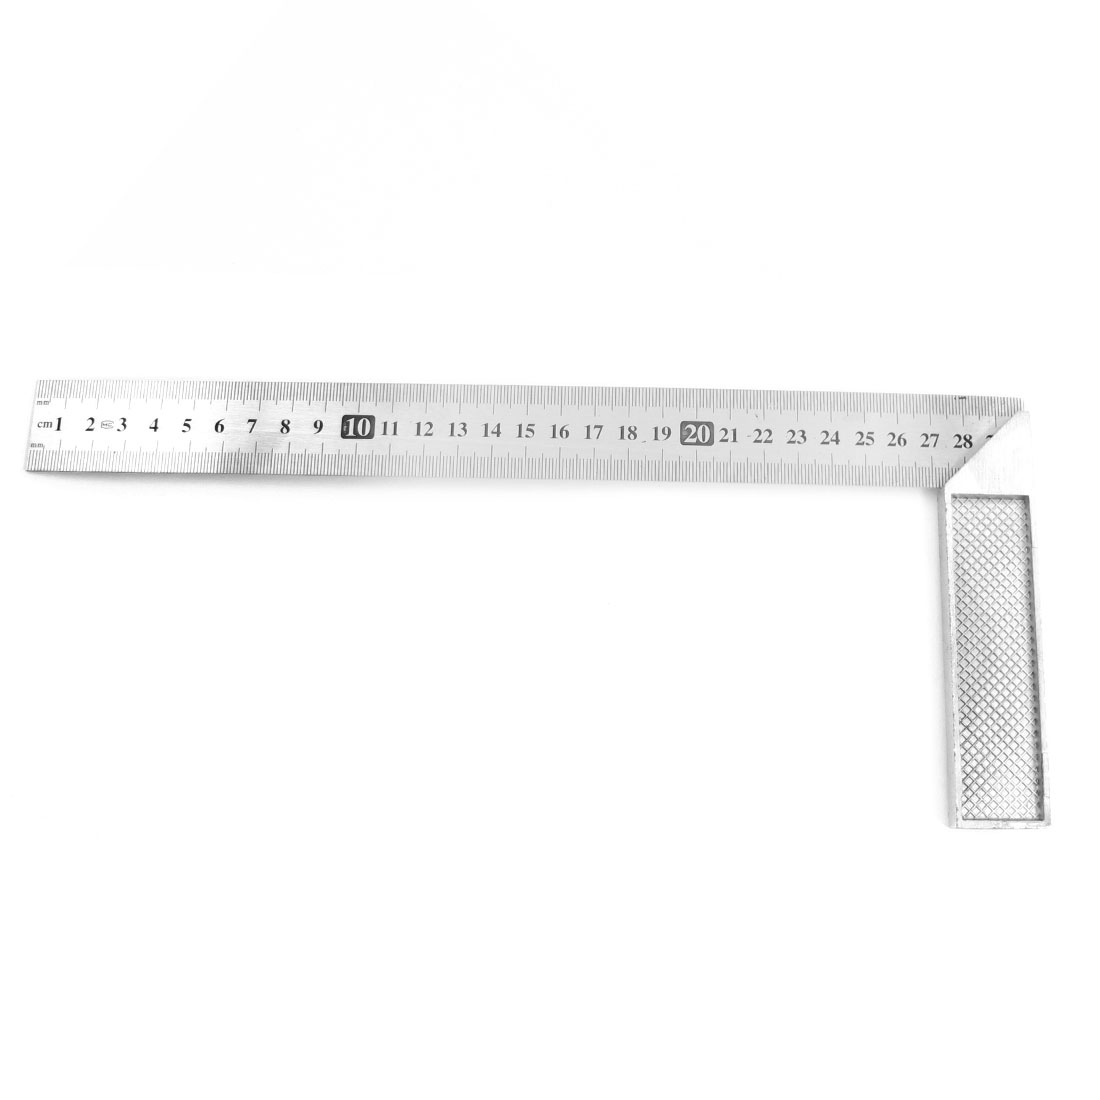 30cm 12 Inch 90 Degree Right Angle L Shaped Square Ruler Tool